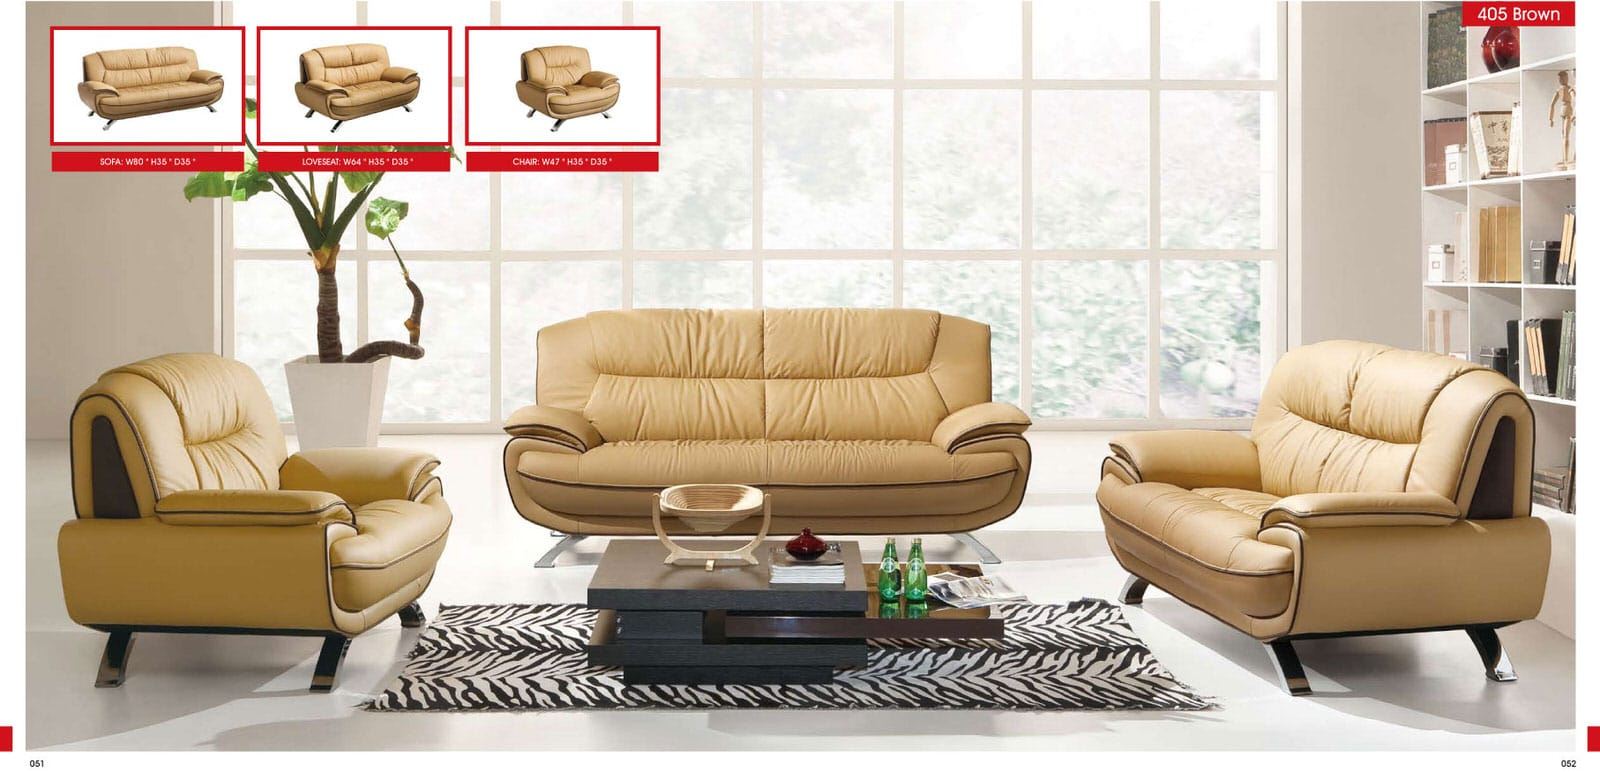 405 brown leather sofa set by esf for Living room coach